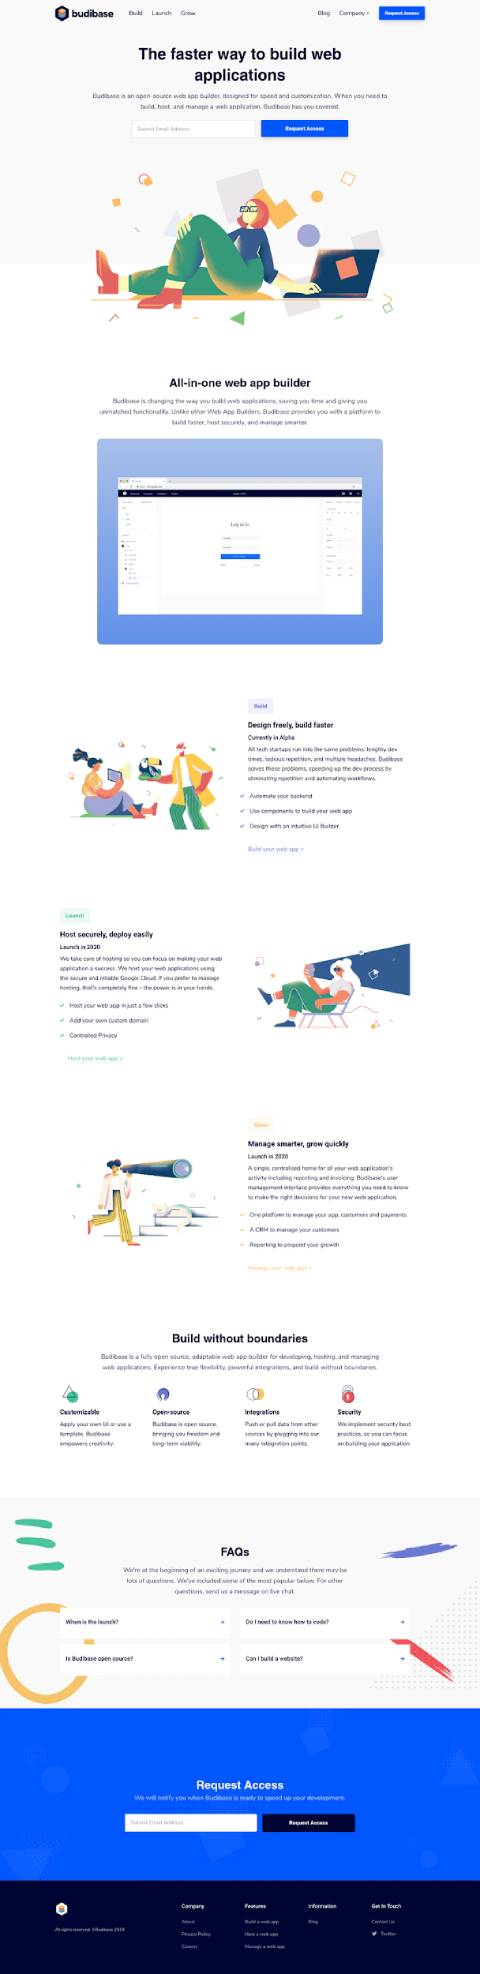 visuals in landing pages 2